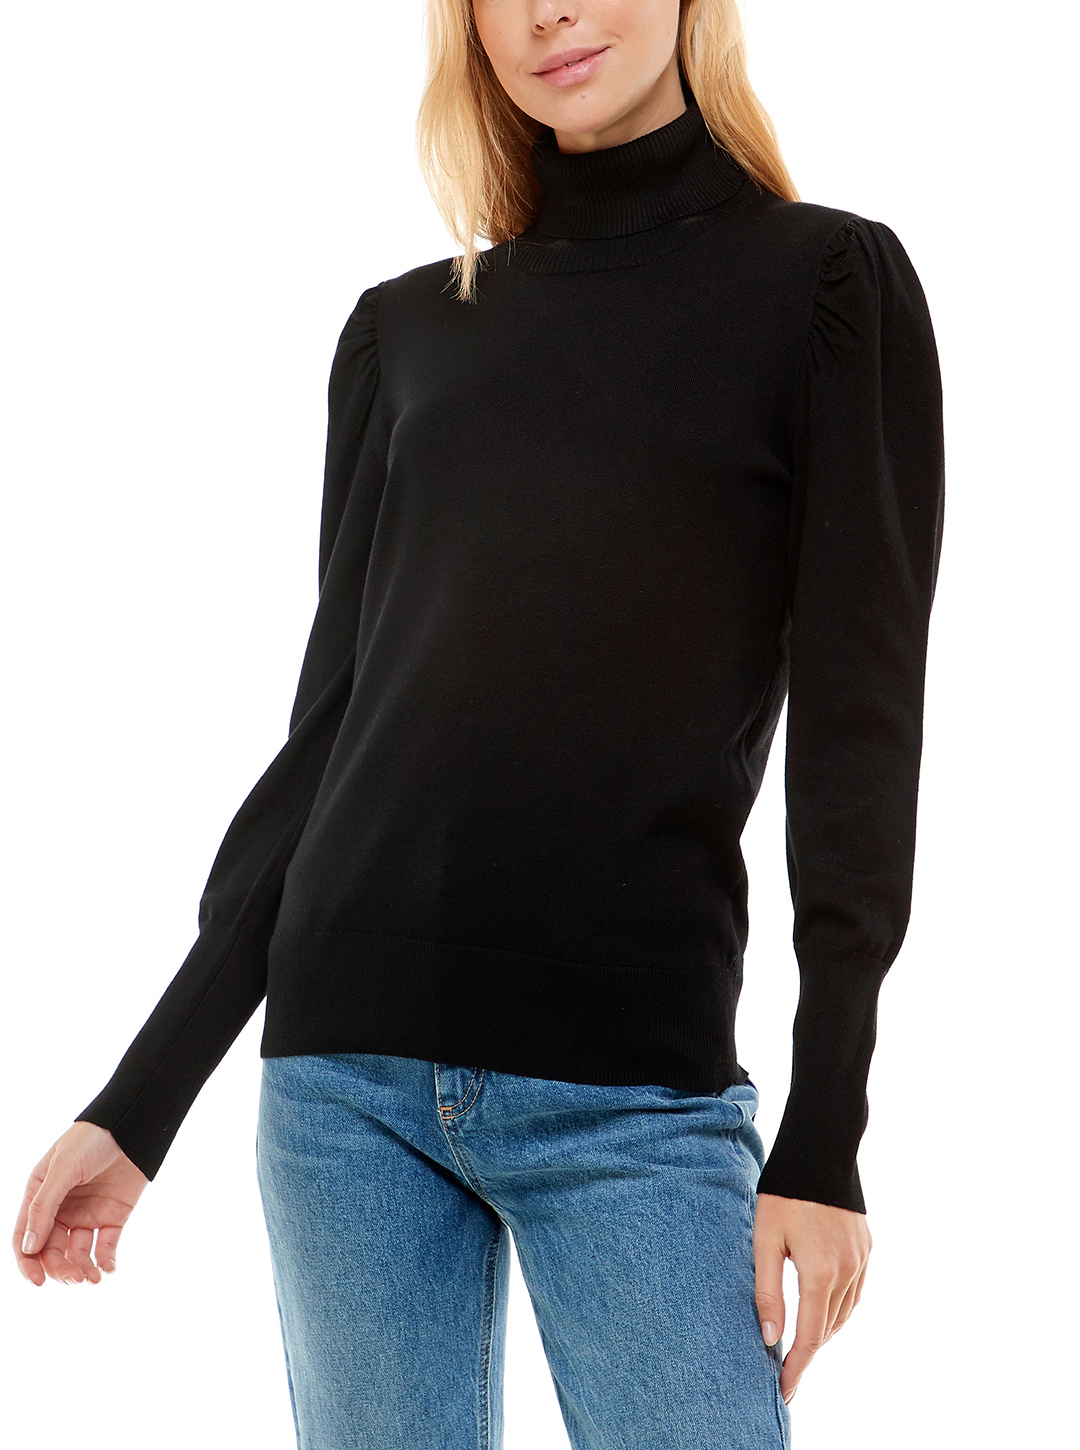 Alison Andrews Puff Sleeve Pullover Sweater